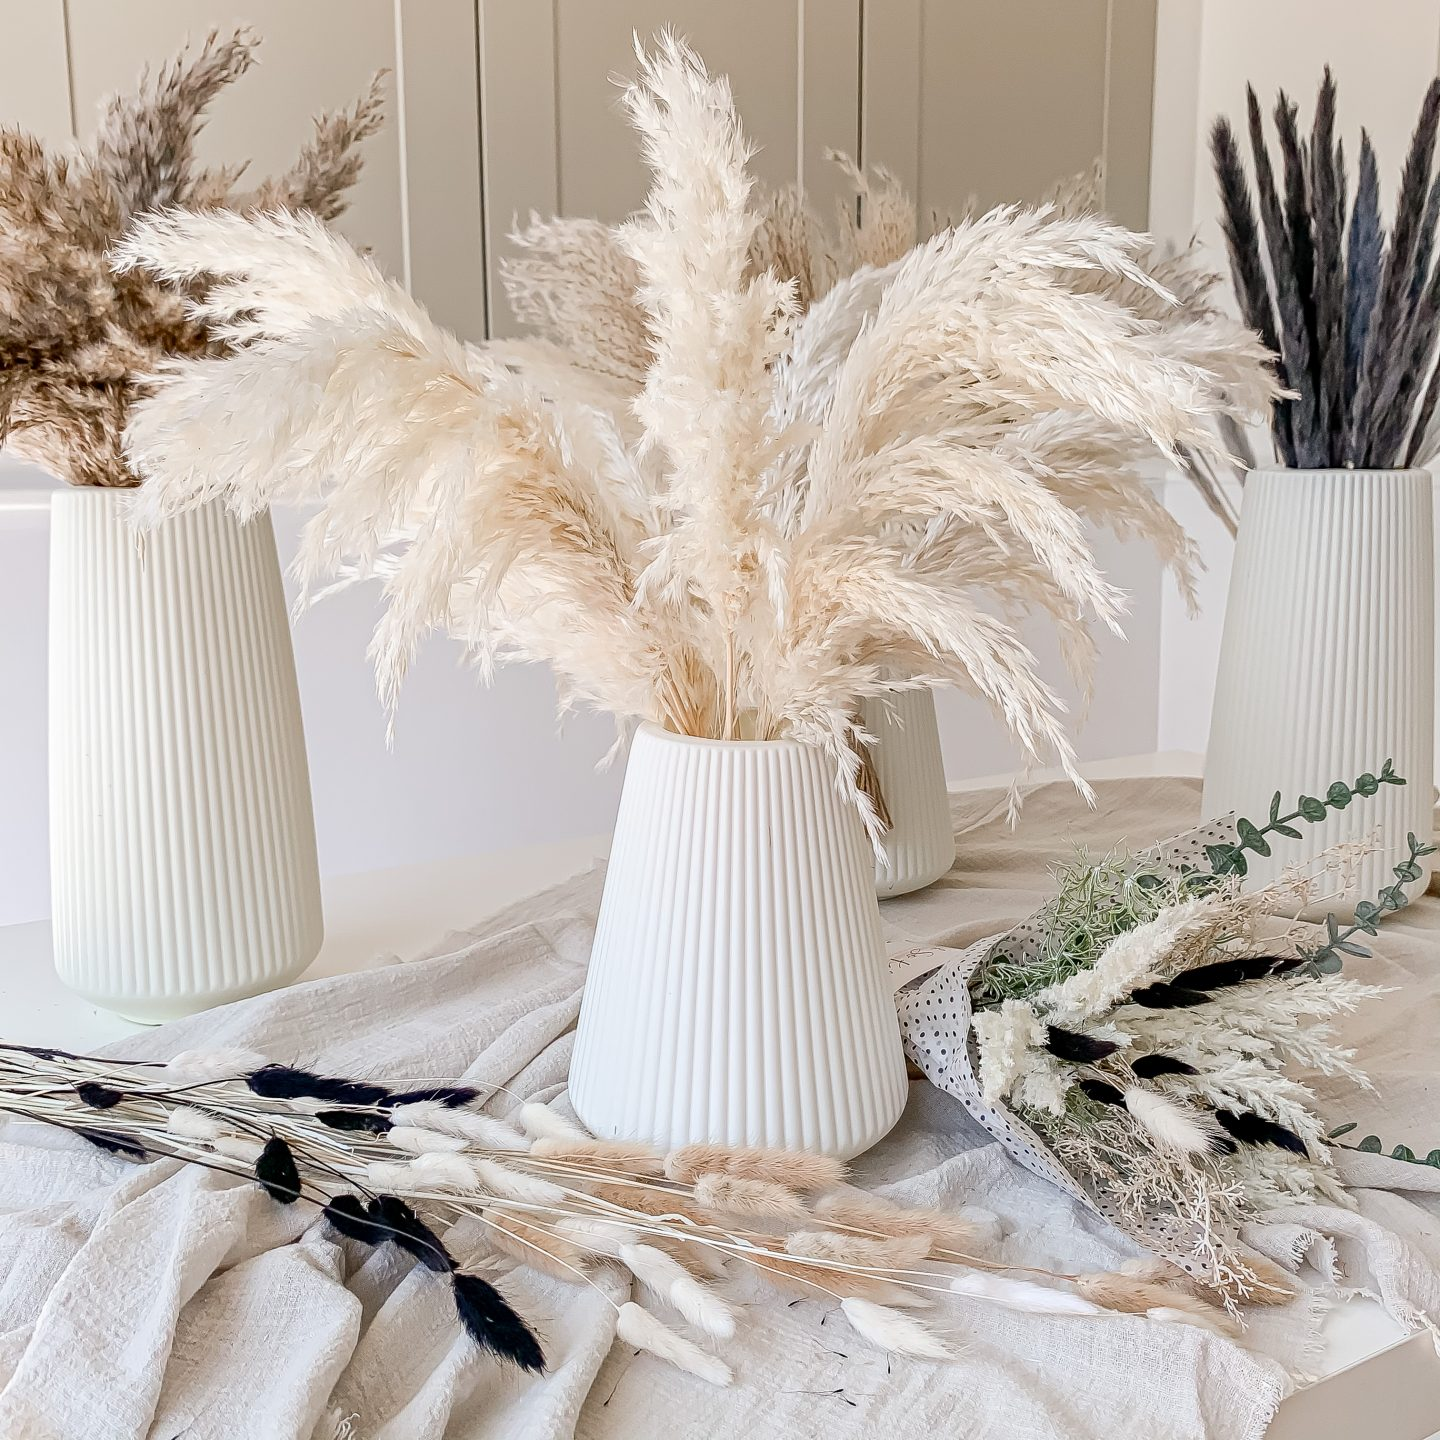 HOW TO CARE FOR DRIED PAMPAS GRASS